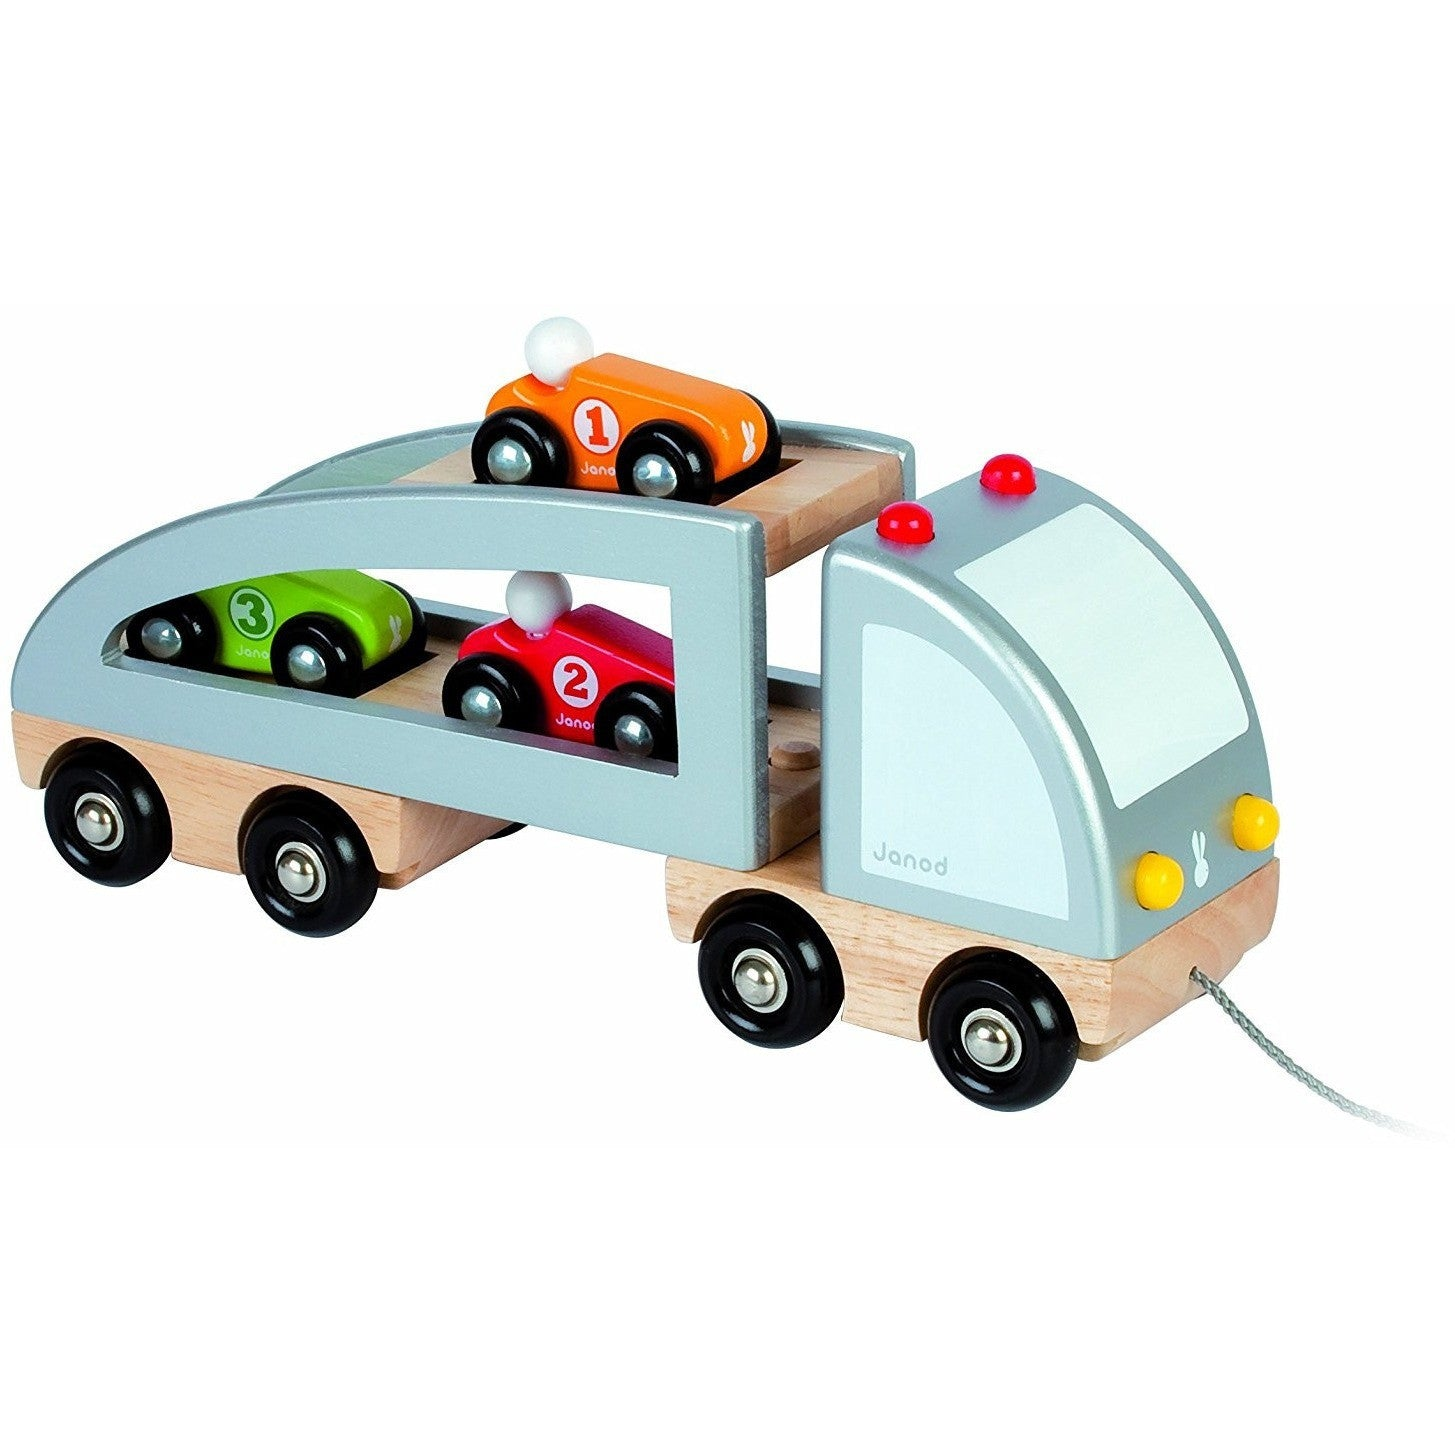 Trailer truck with cars - French Carousel